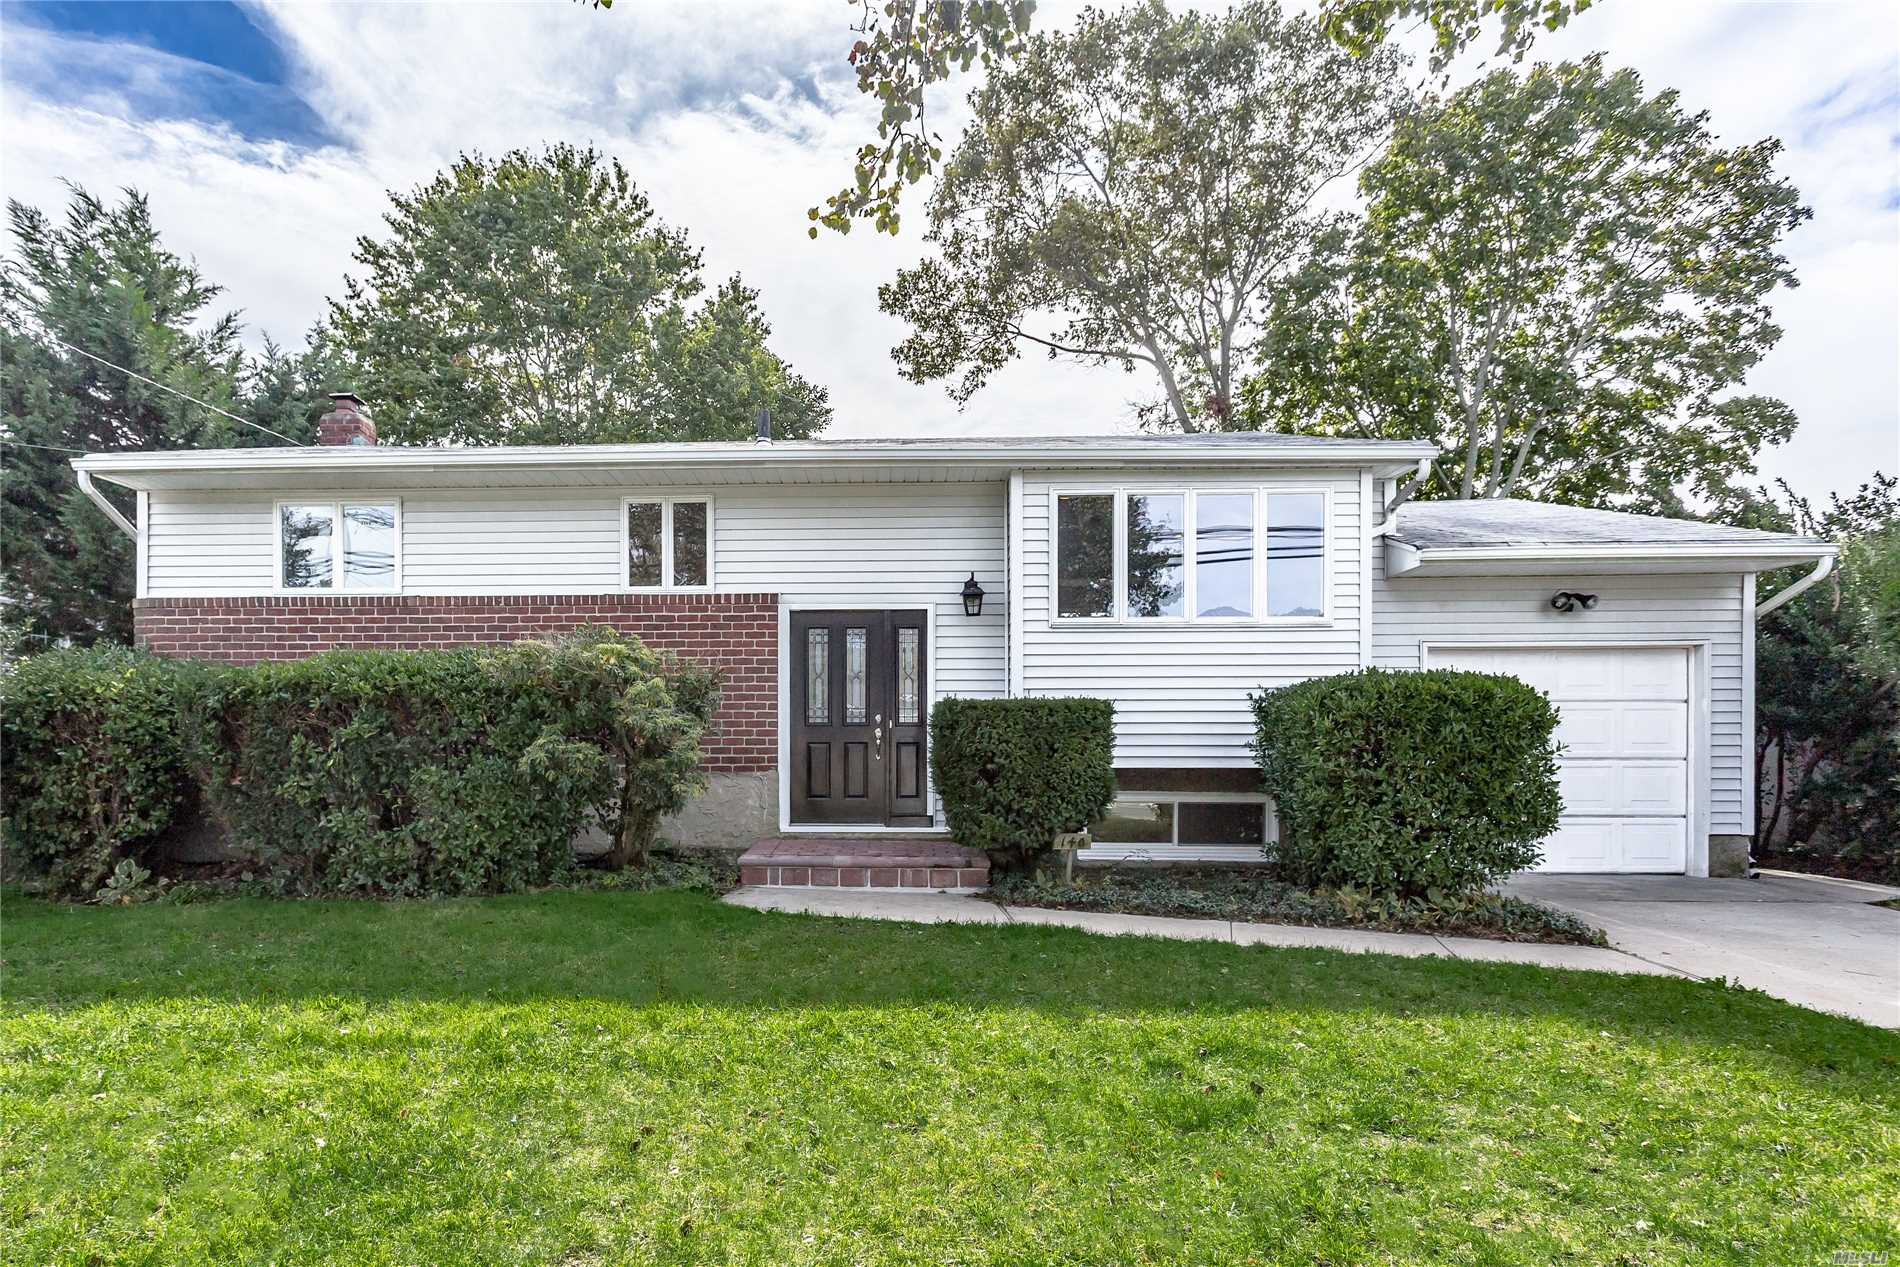 Mint Raised Ranch Features 3/4Bedrooms, 2 New Full Baths, Large Den, New Kitchen With Granite Island And Ss Appliancesnew Gas Fired Boiler W Sep Hw Heater, New Central Air, New Paver Patio.Garage Access Through Interior(Ose) Walk To Trails And Preserve